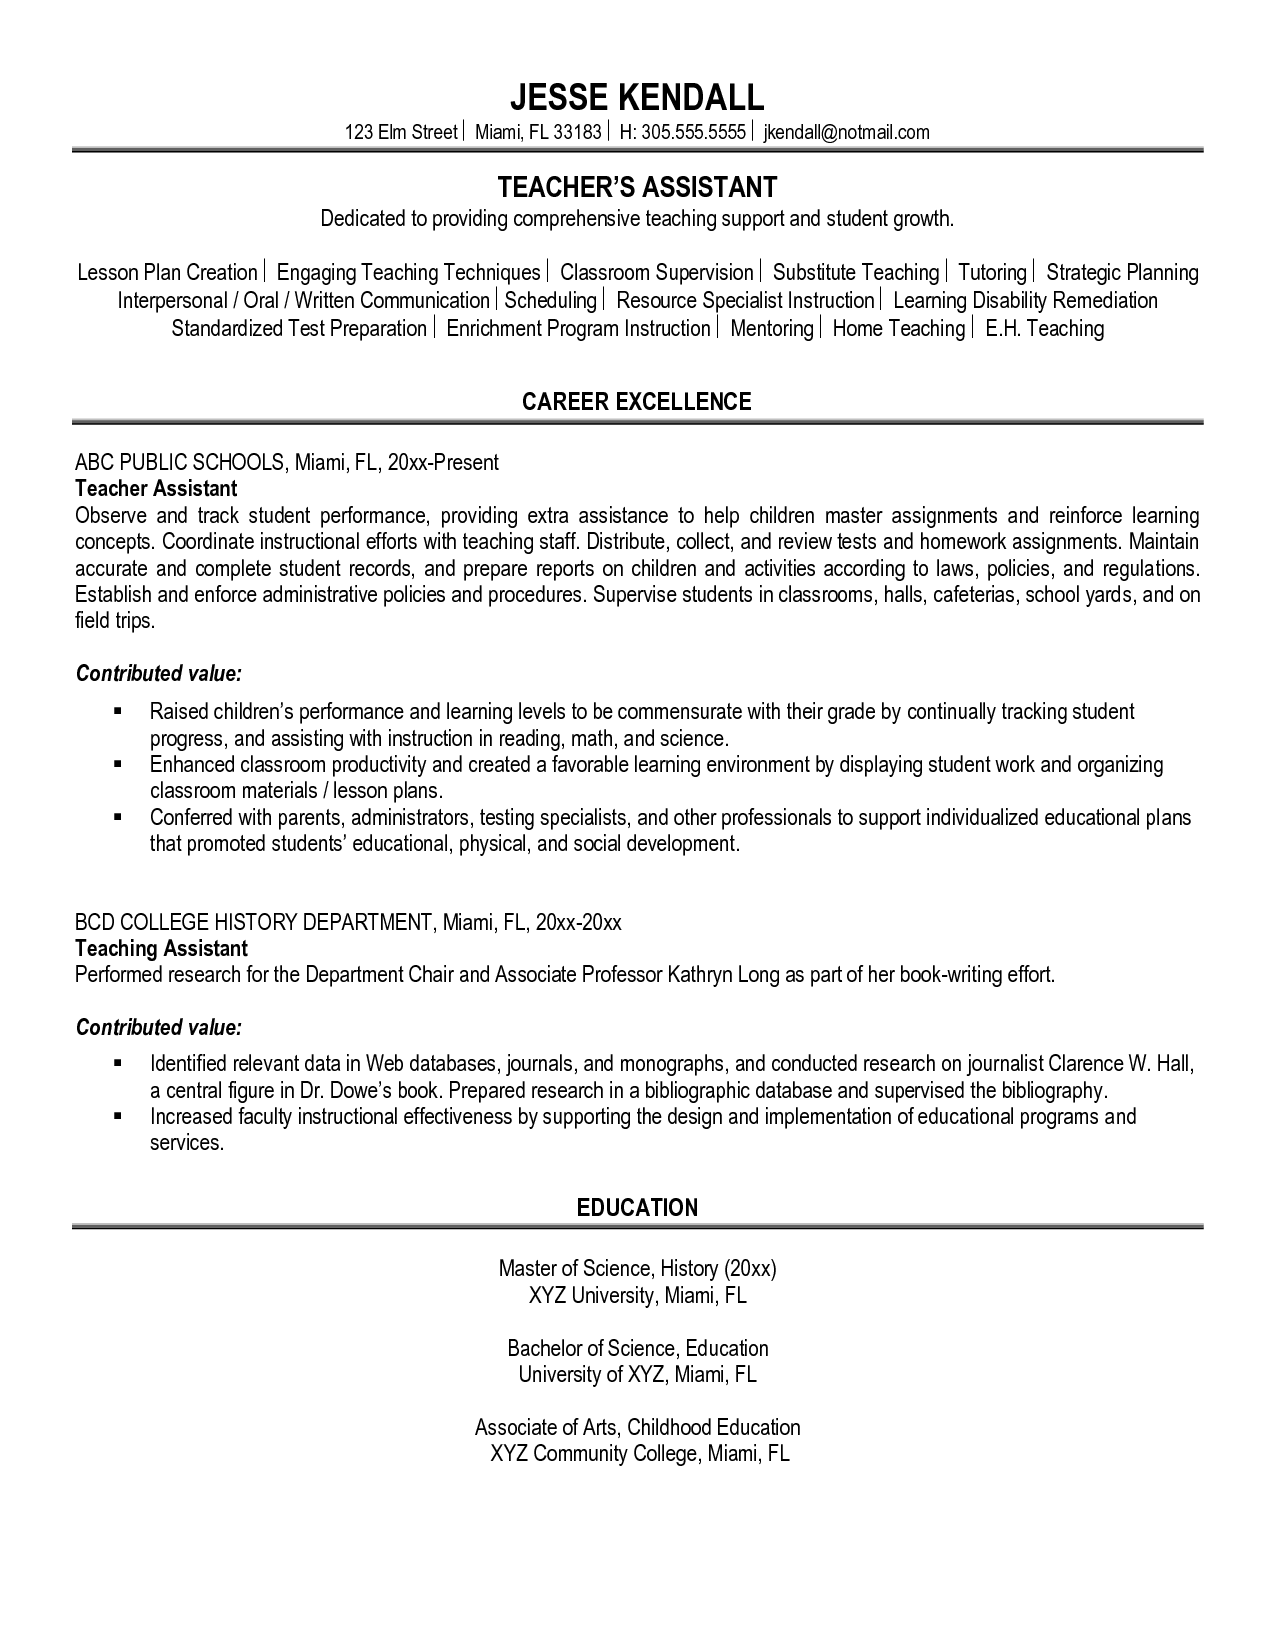 Sample Personal Statement For Resume – Personal Statement for Resume Examples